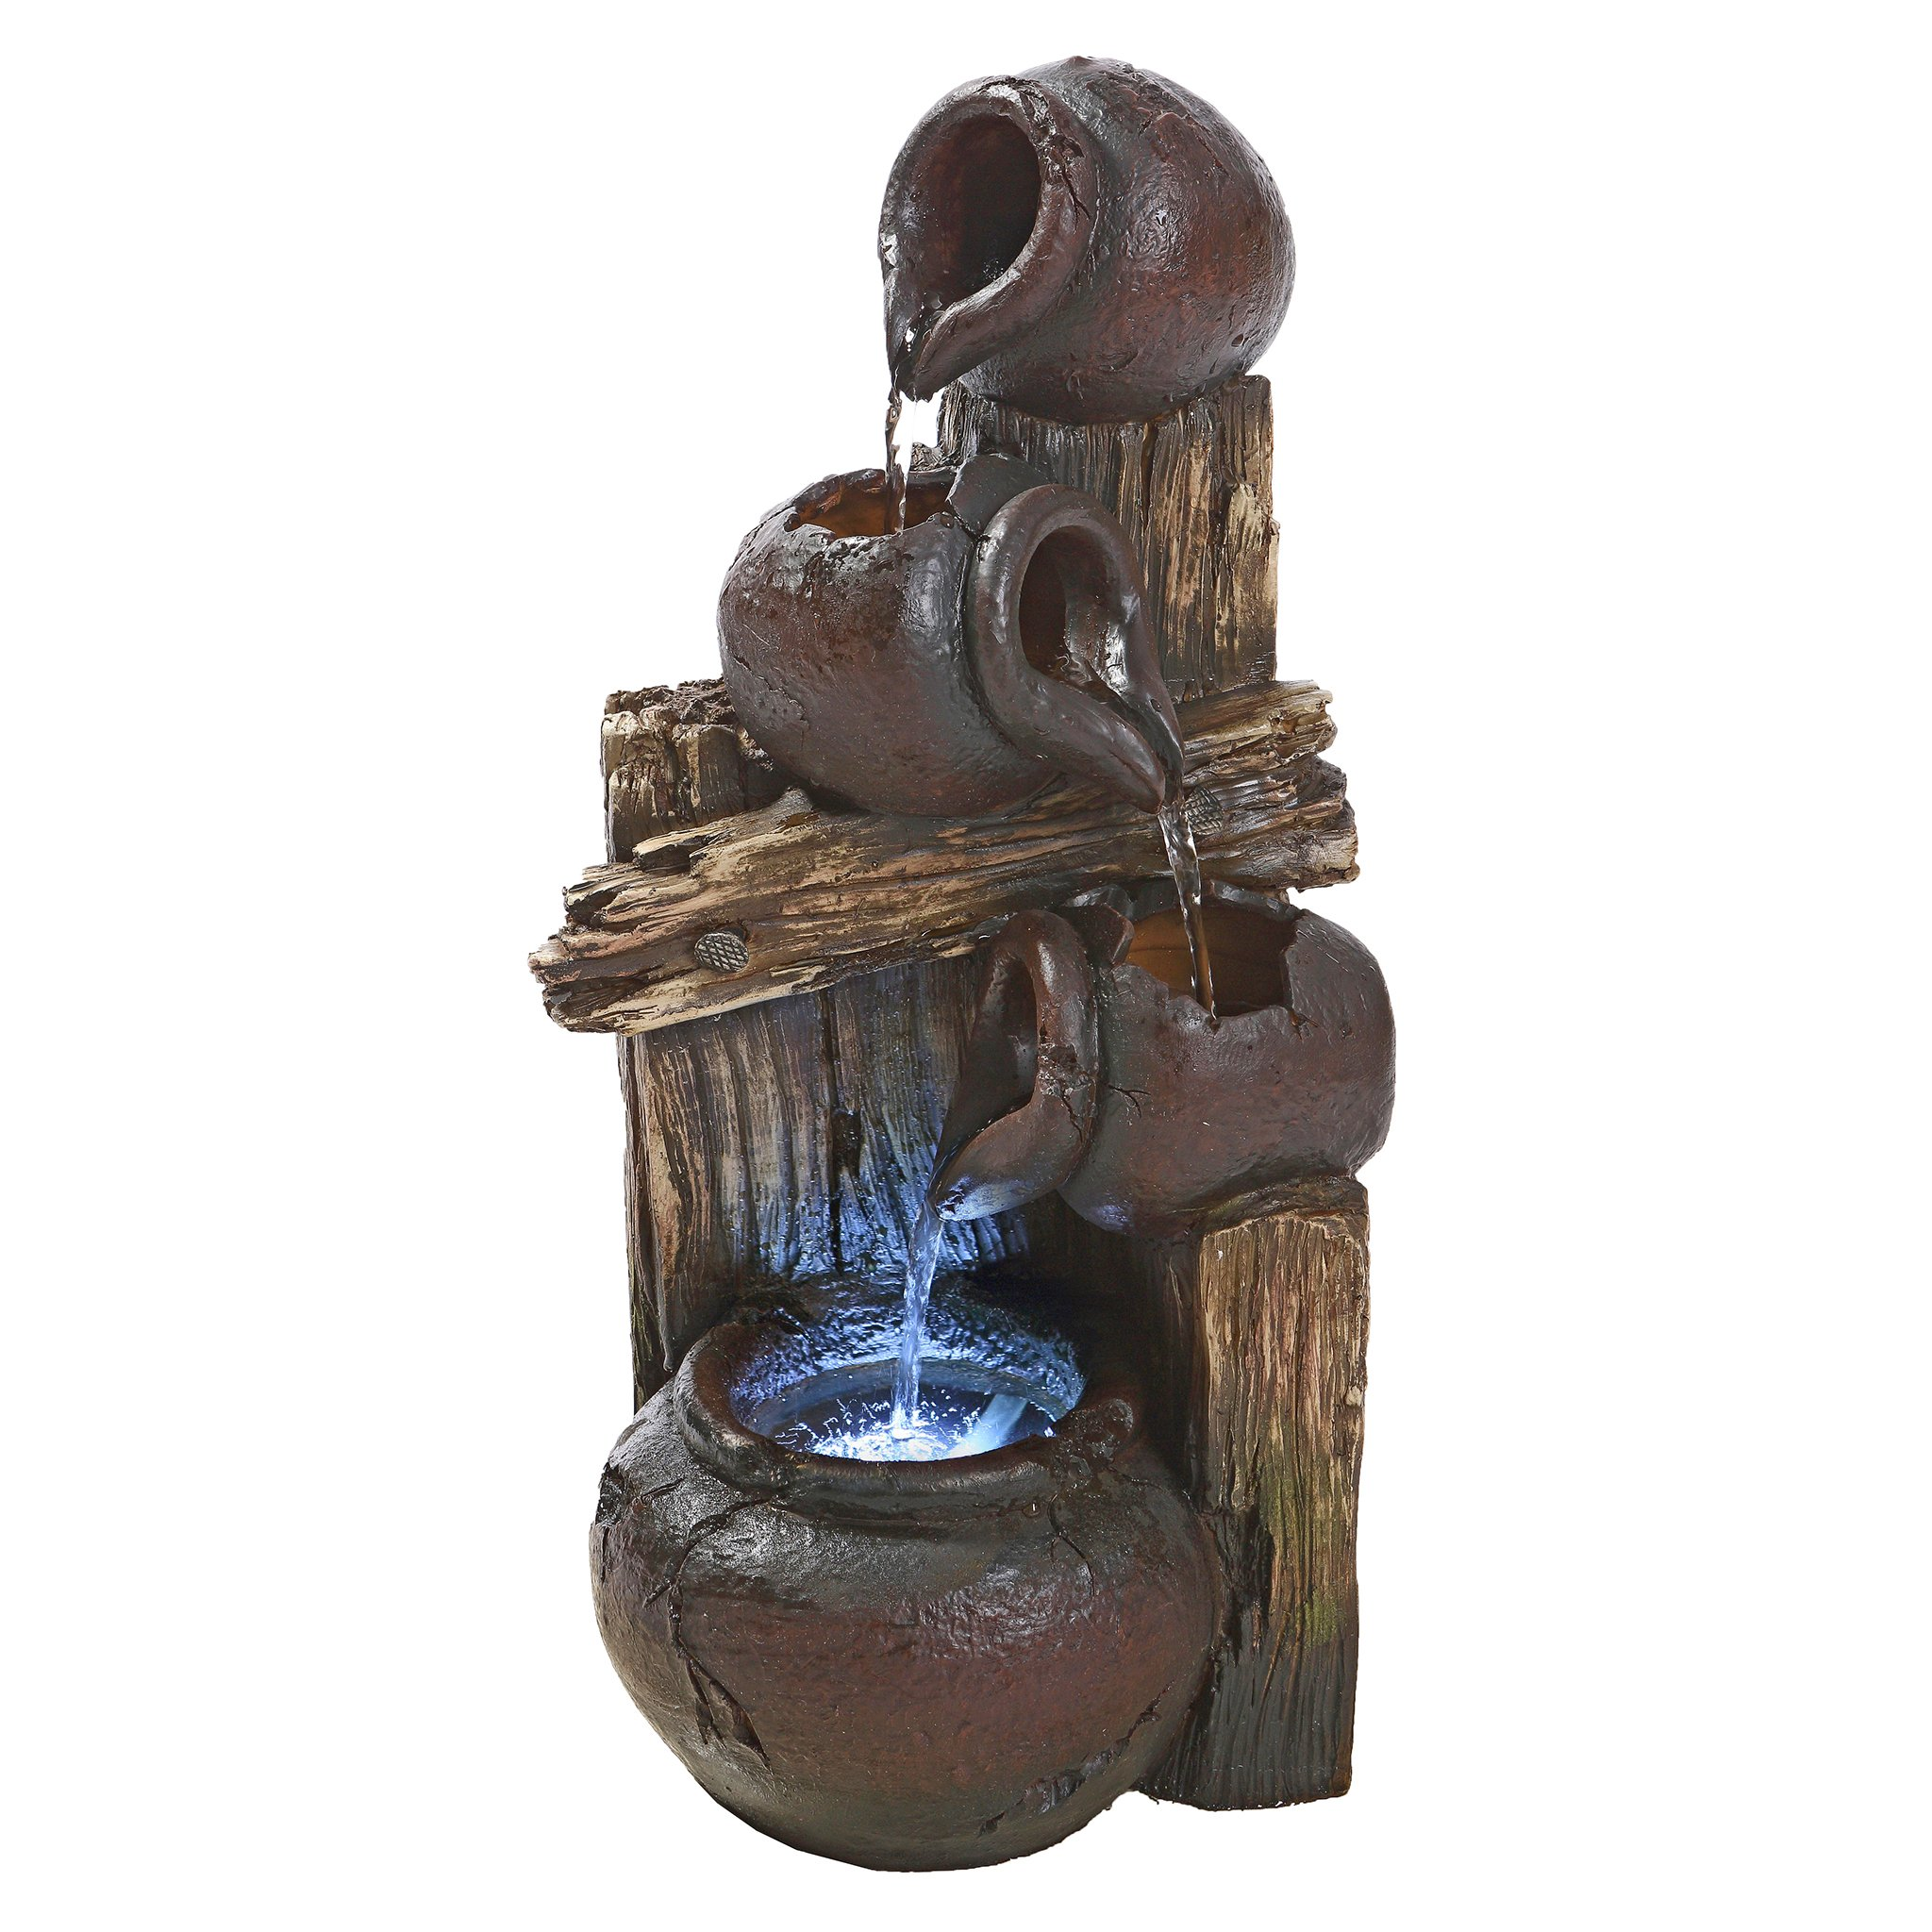 Water Fountain with LED Light - Casa Chianti Water Urns Garden Decor Fountain - Outdoor Water Feature